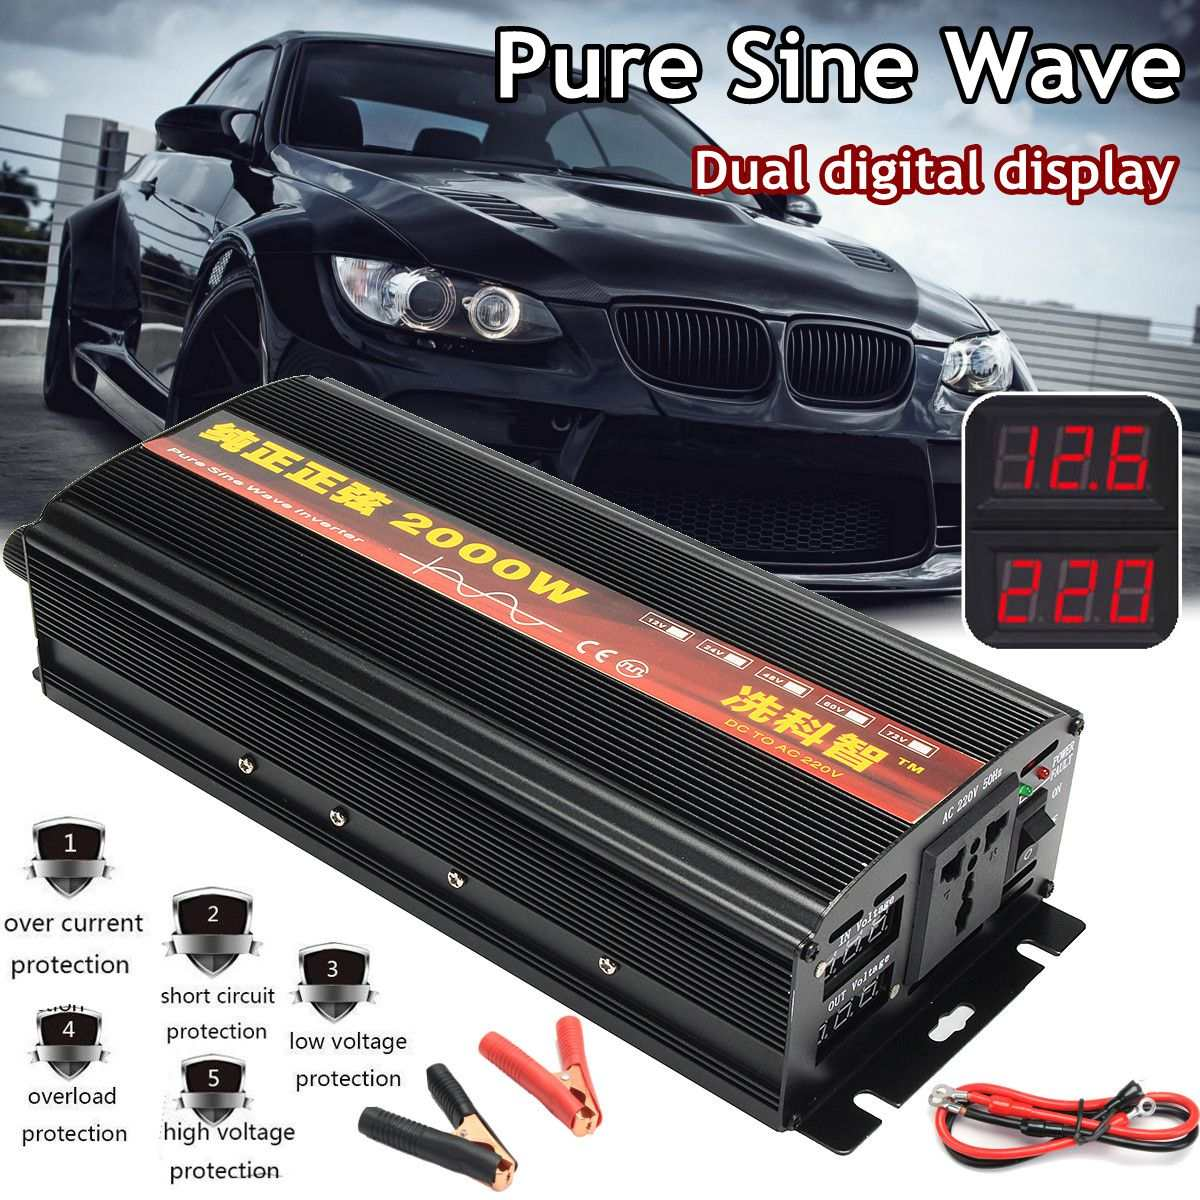 цена на Car Inverter Lot Power Inverter Pure Sine Wave DC12V to AC220V 2000W-4000W Solar Inverter Dual Digital Display